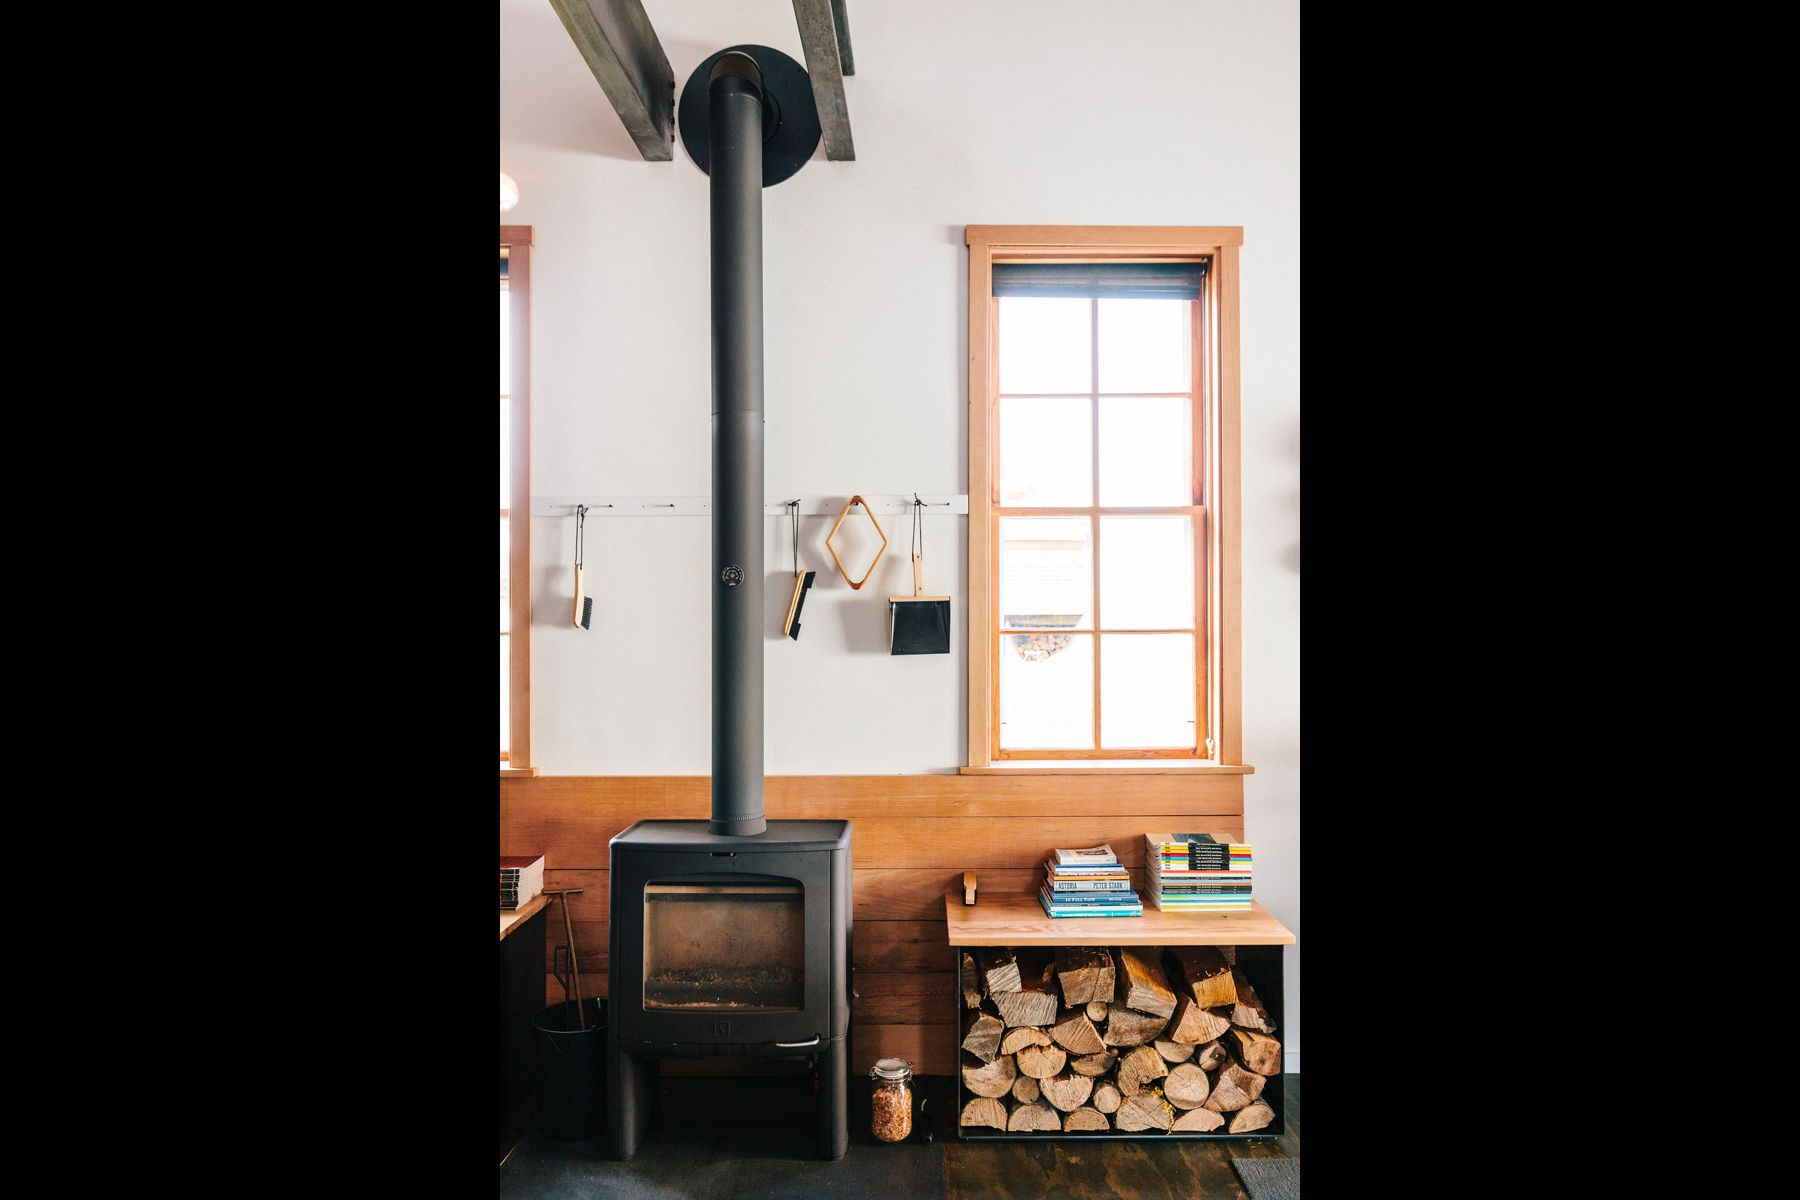 wood stove, fireplace, wood storage, home design, scandanavian design